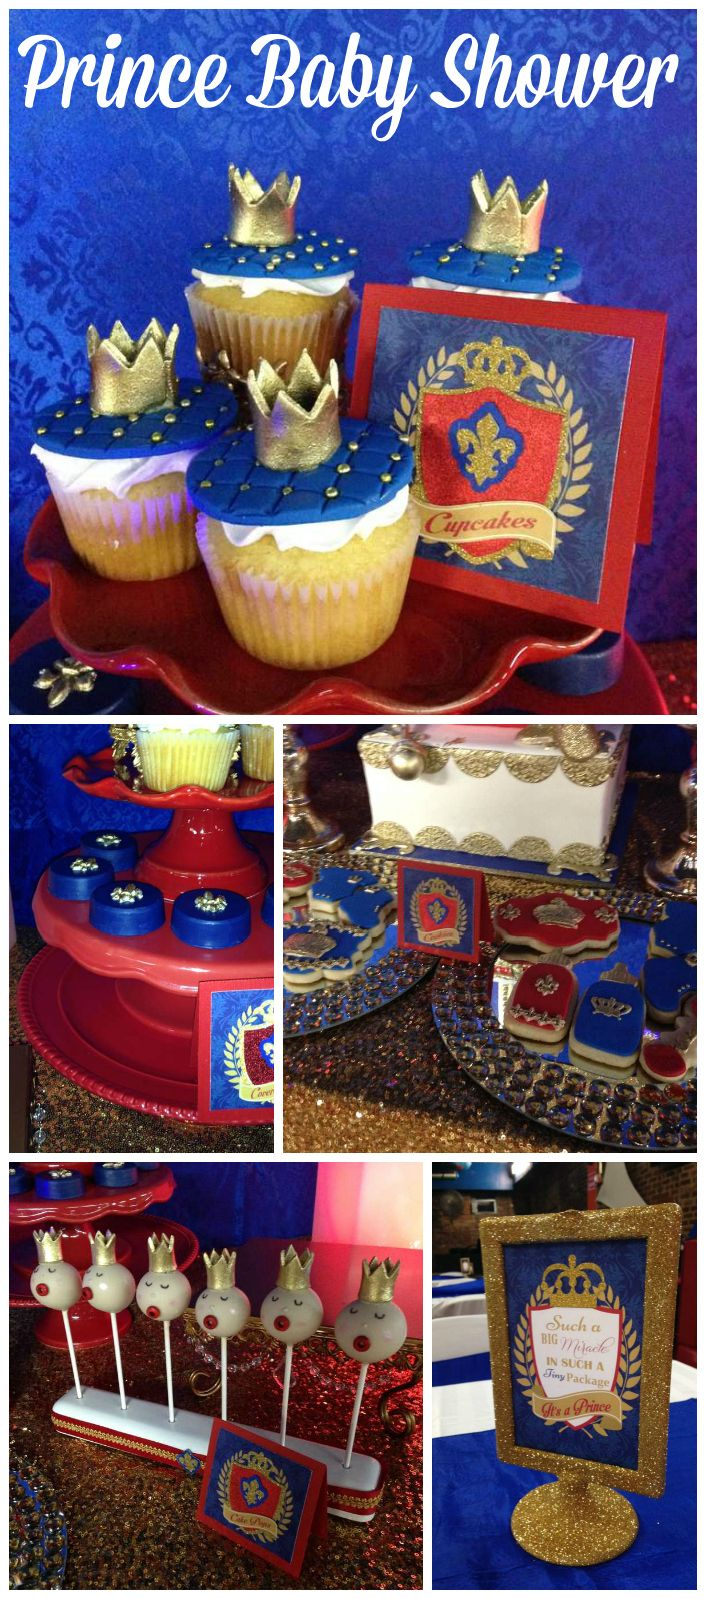 A royal prince baby shower party with crown topped cupcakes and cake pops! See more party planning ideas at CatchMyParty.com!